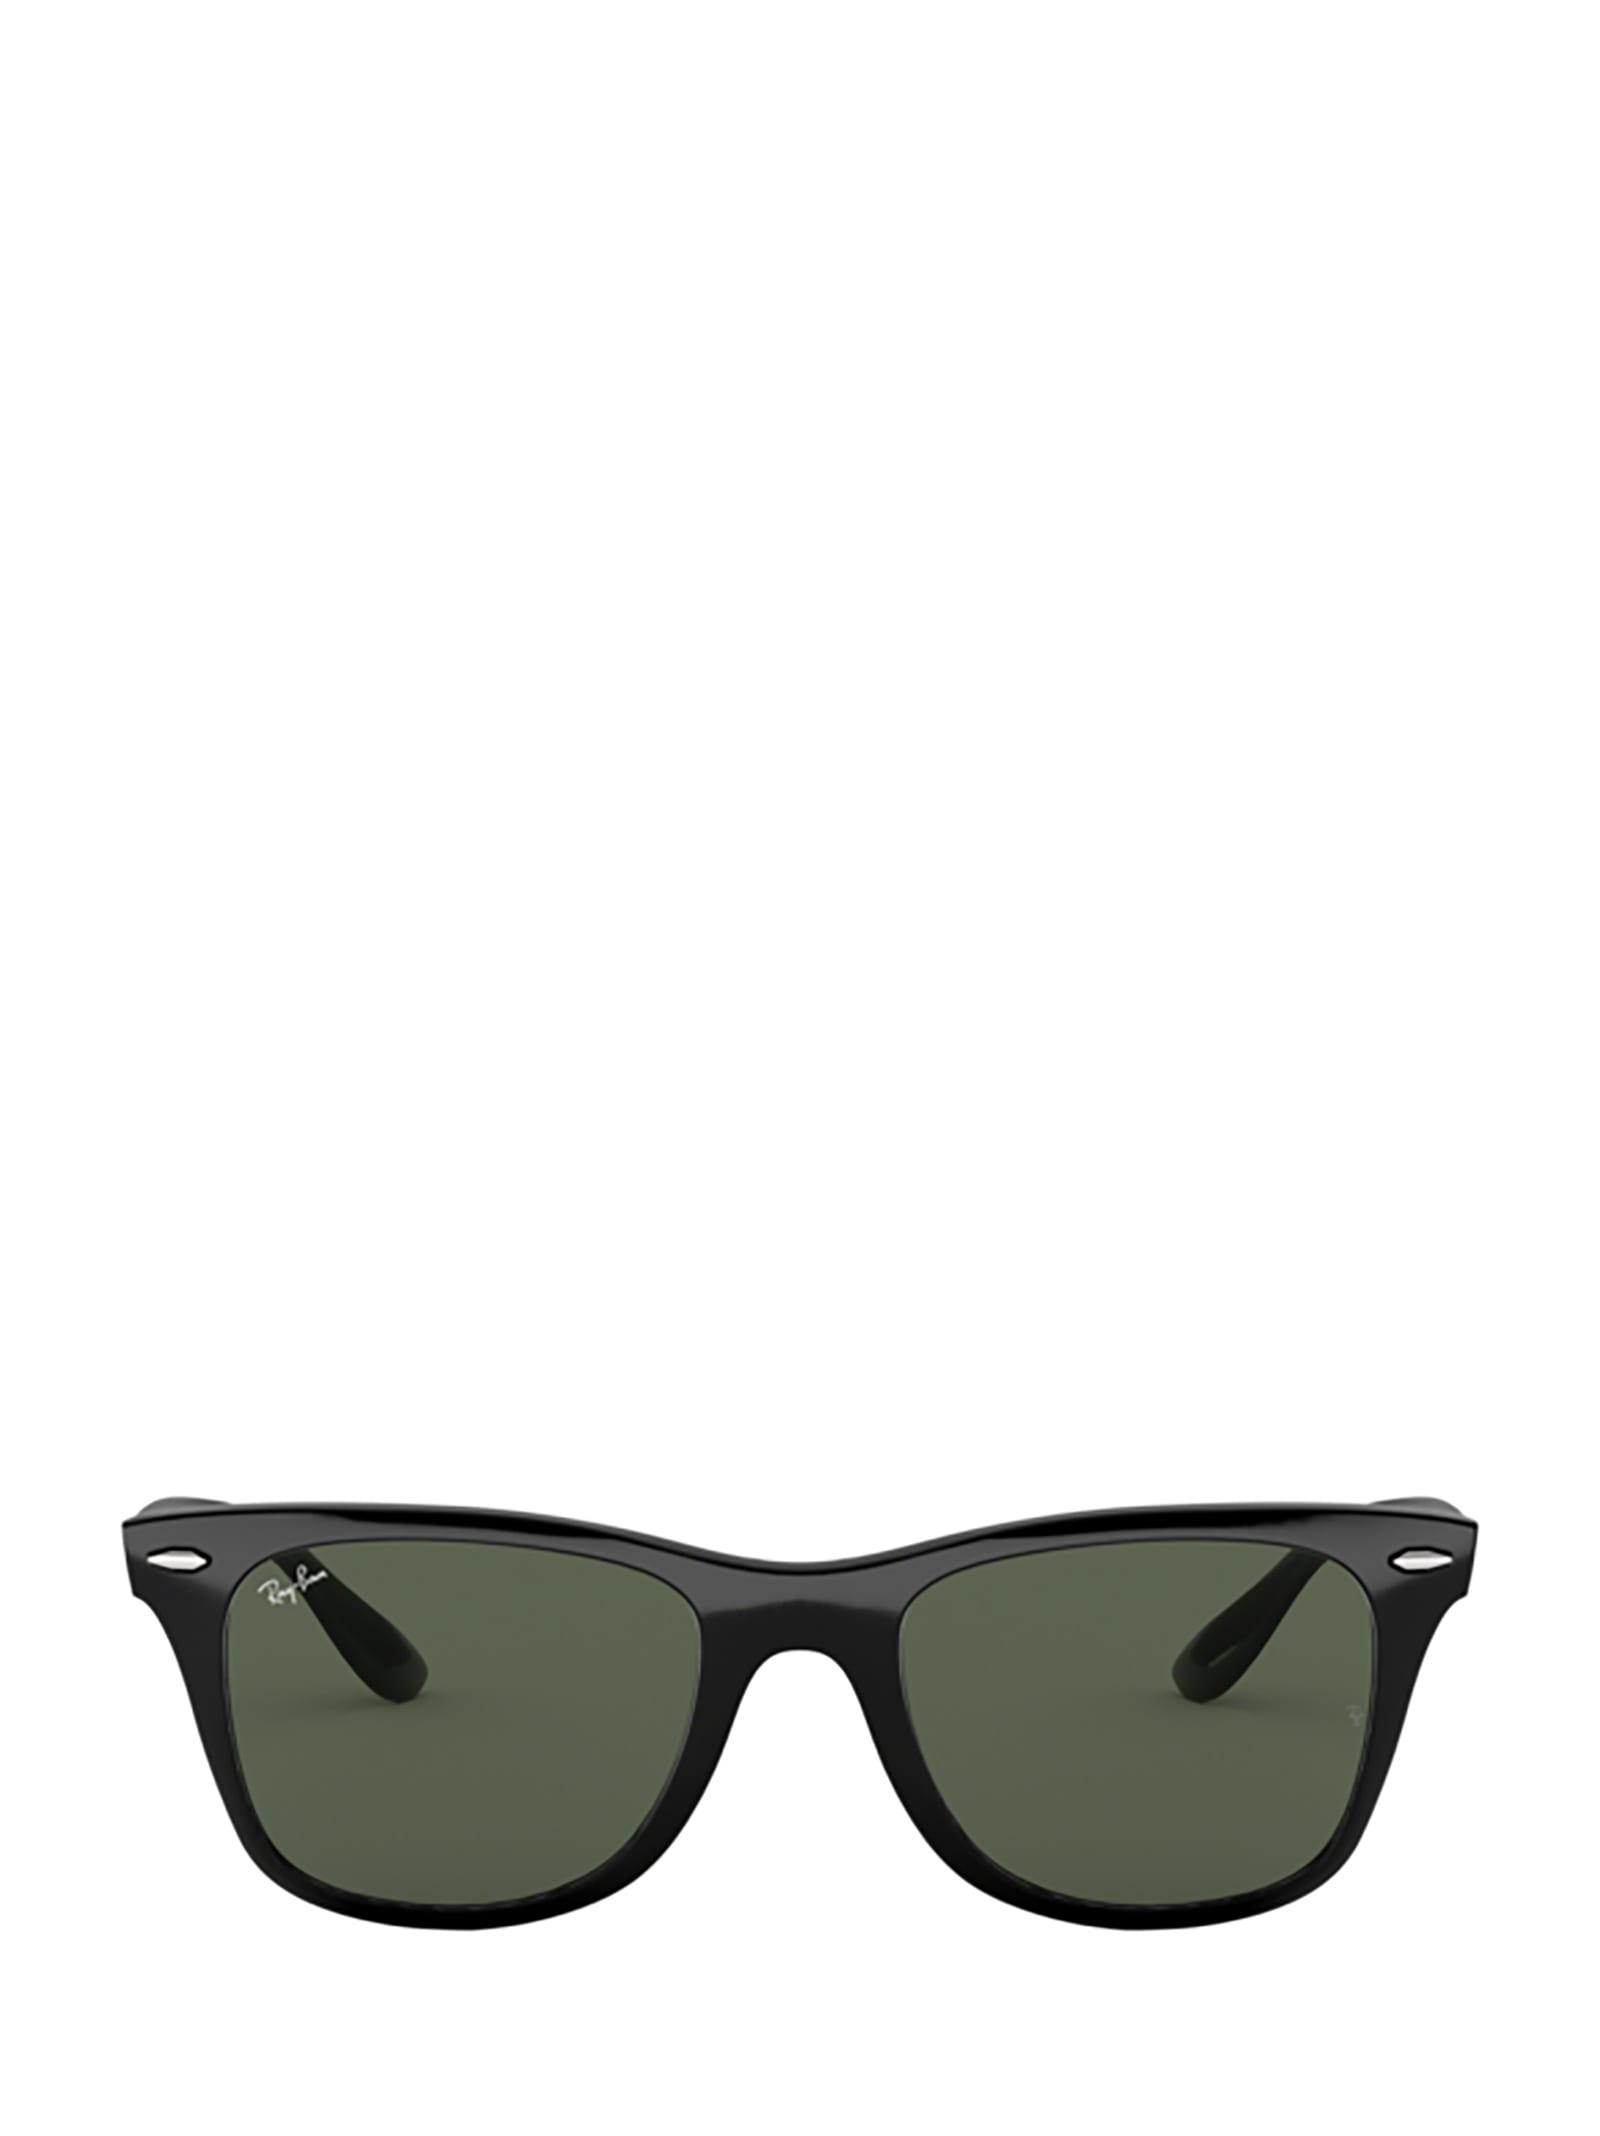 Ray-Ban Ray-ban Rb4195 Black Sunglasses